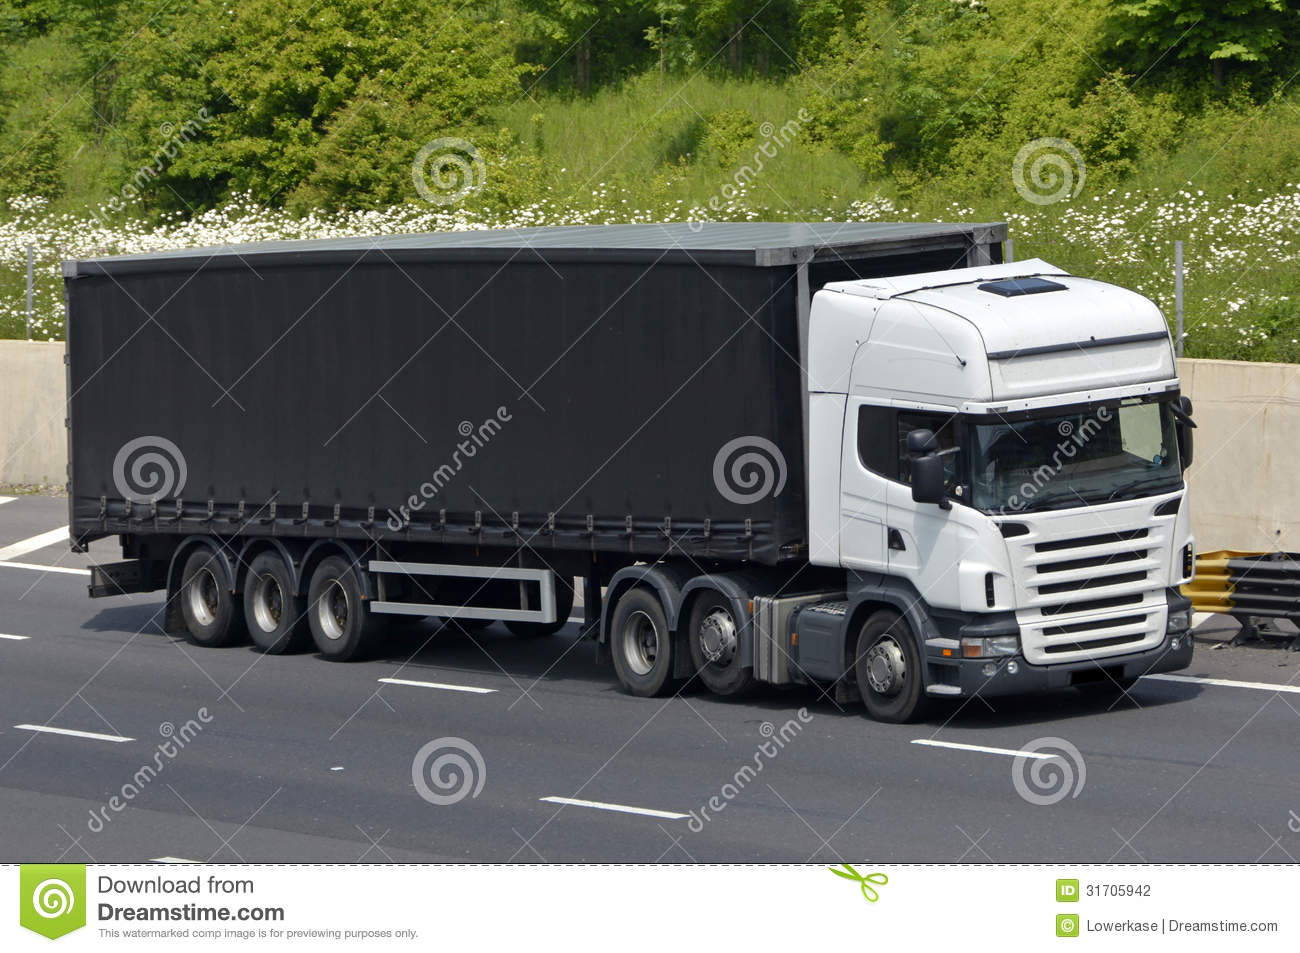 miamicars   upload FLATBED 20TRUCK furthermore Manual Transmission Dead Never  ing Back Ever further Photo 40 besides semiworkingvacation likewise Royalty Free Stock Images Gmc Contract Freighters Truck Trailer Restored Con Way Truckload Was Founded As Inc Cfi  pany Image40725979. on semi truck travel trailers